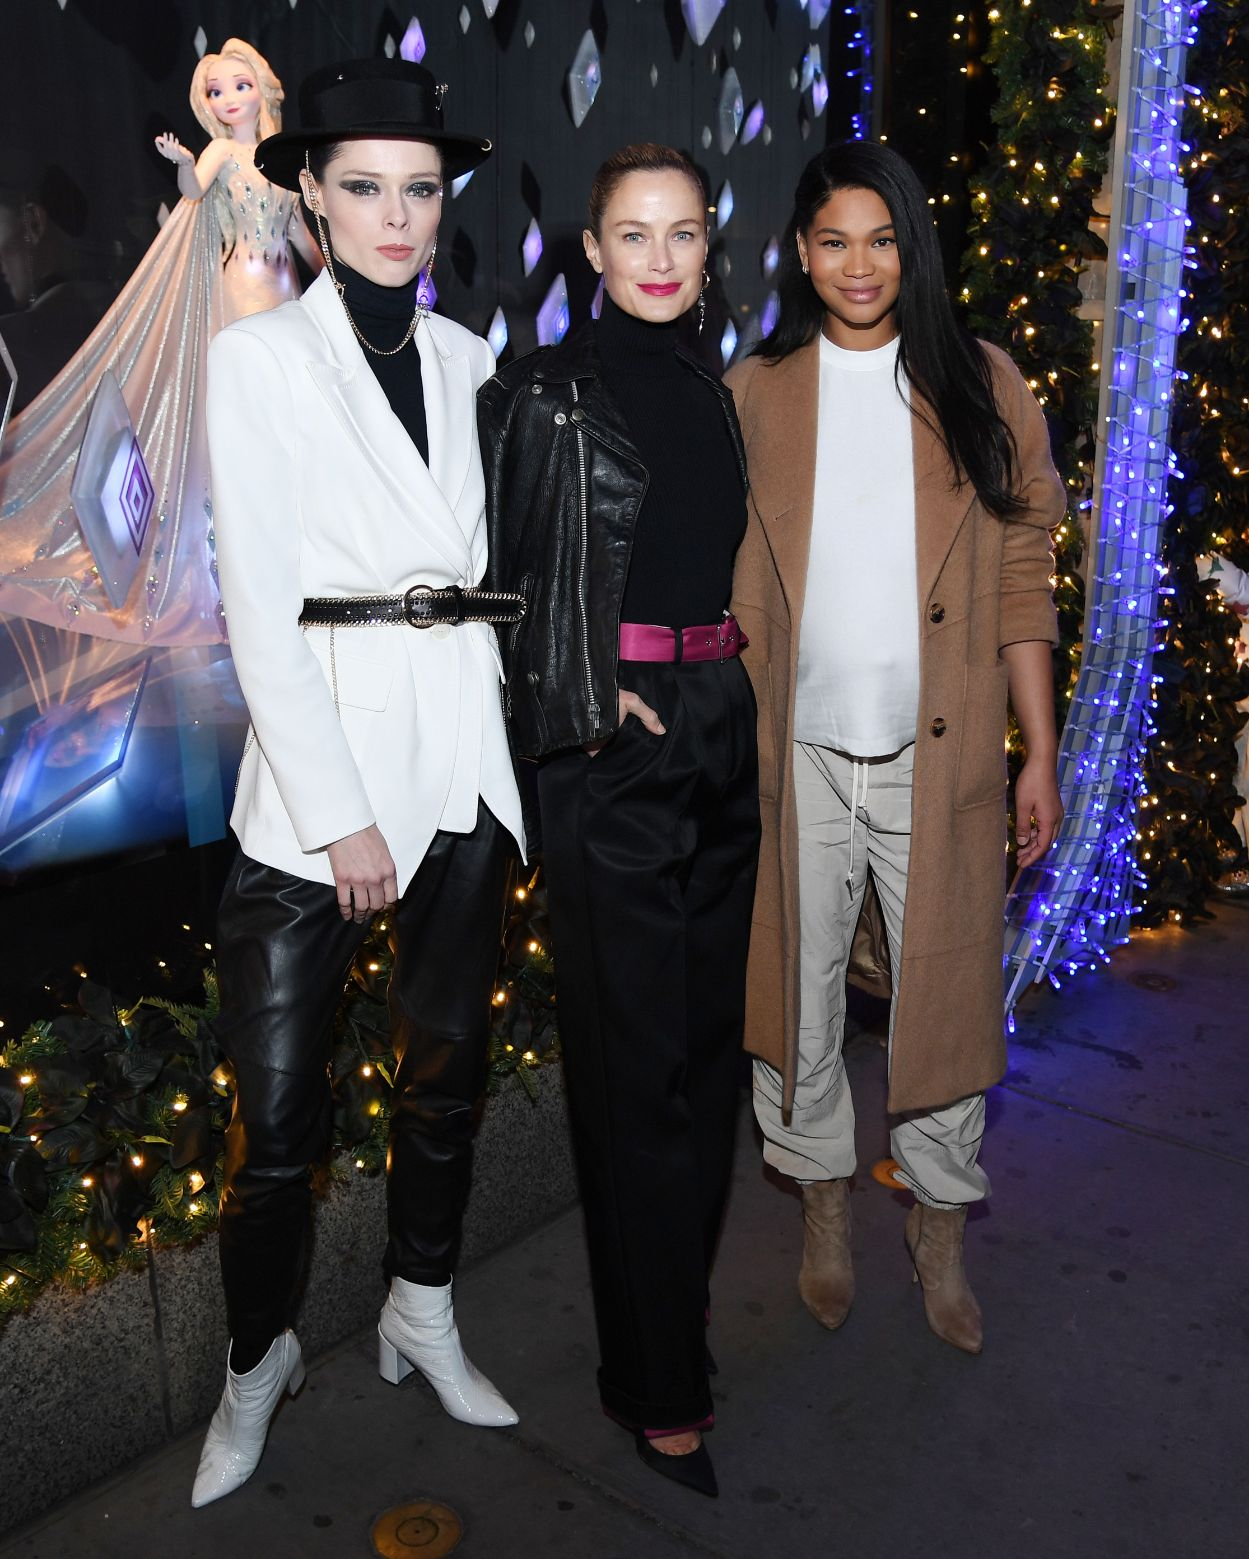 Coco Rocha, Carolyn Murphy, Chanel Iman, saks, window unveil